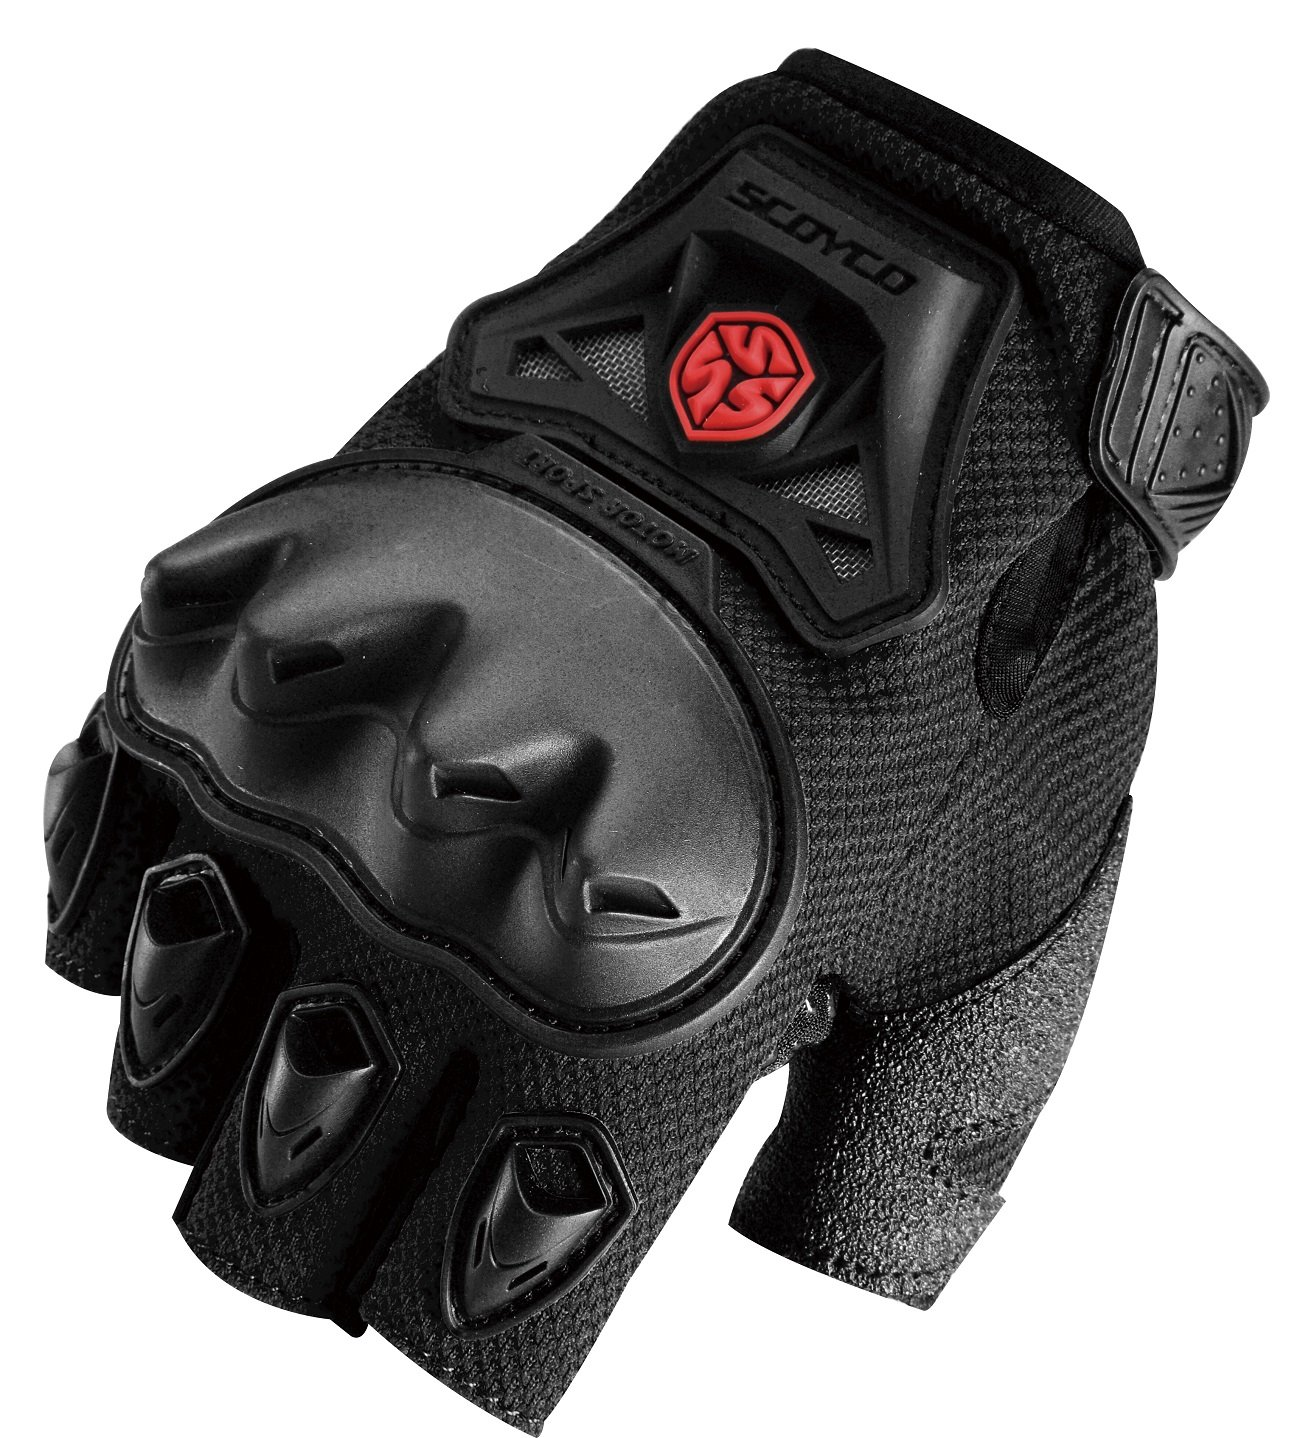 CRAZY AL'S SCOYCO MC29D Motorcycle Fingerless Gloves Sports Protective Gear Shock Resistant Padded Fingerless Safety Breathable Motorcycle Gloves (XL, Black)